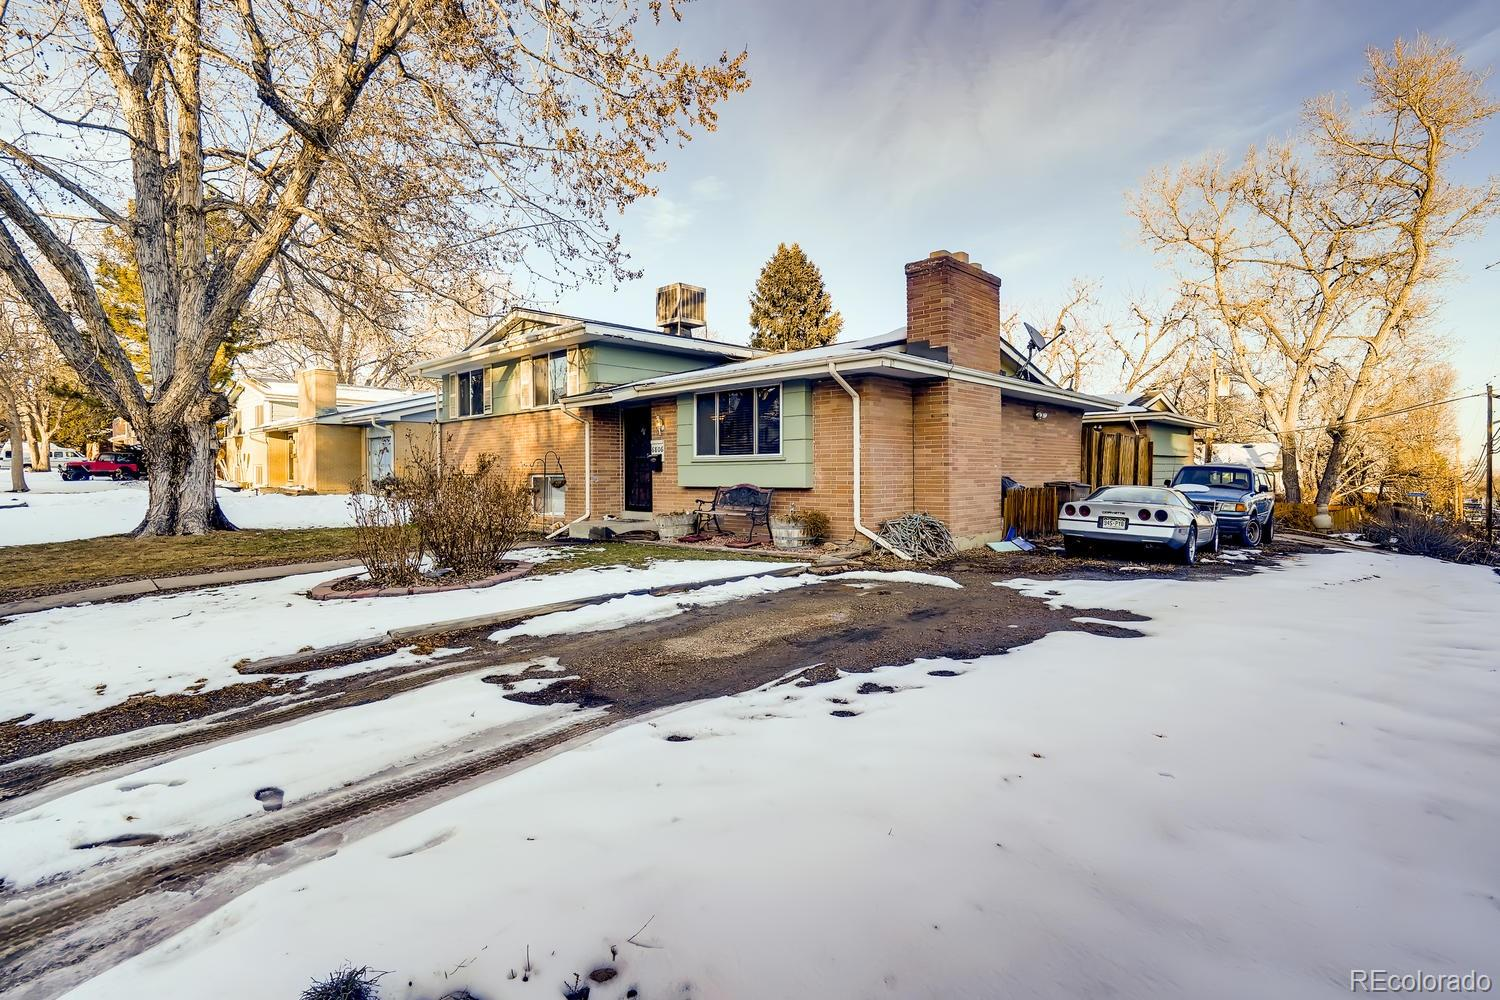 MLS# 4307162 - 2 - 6806 Brentwood Street, Arvada, CO 80004